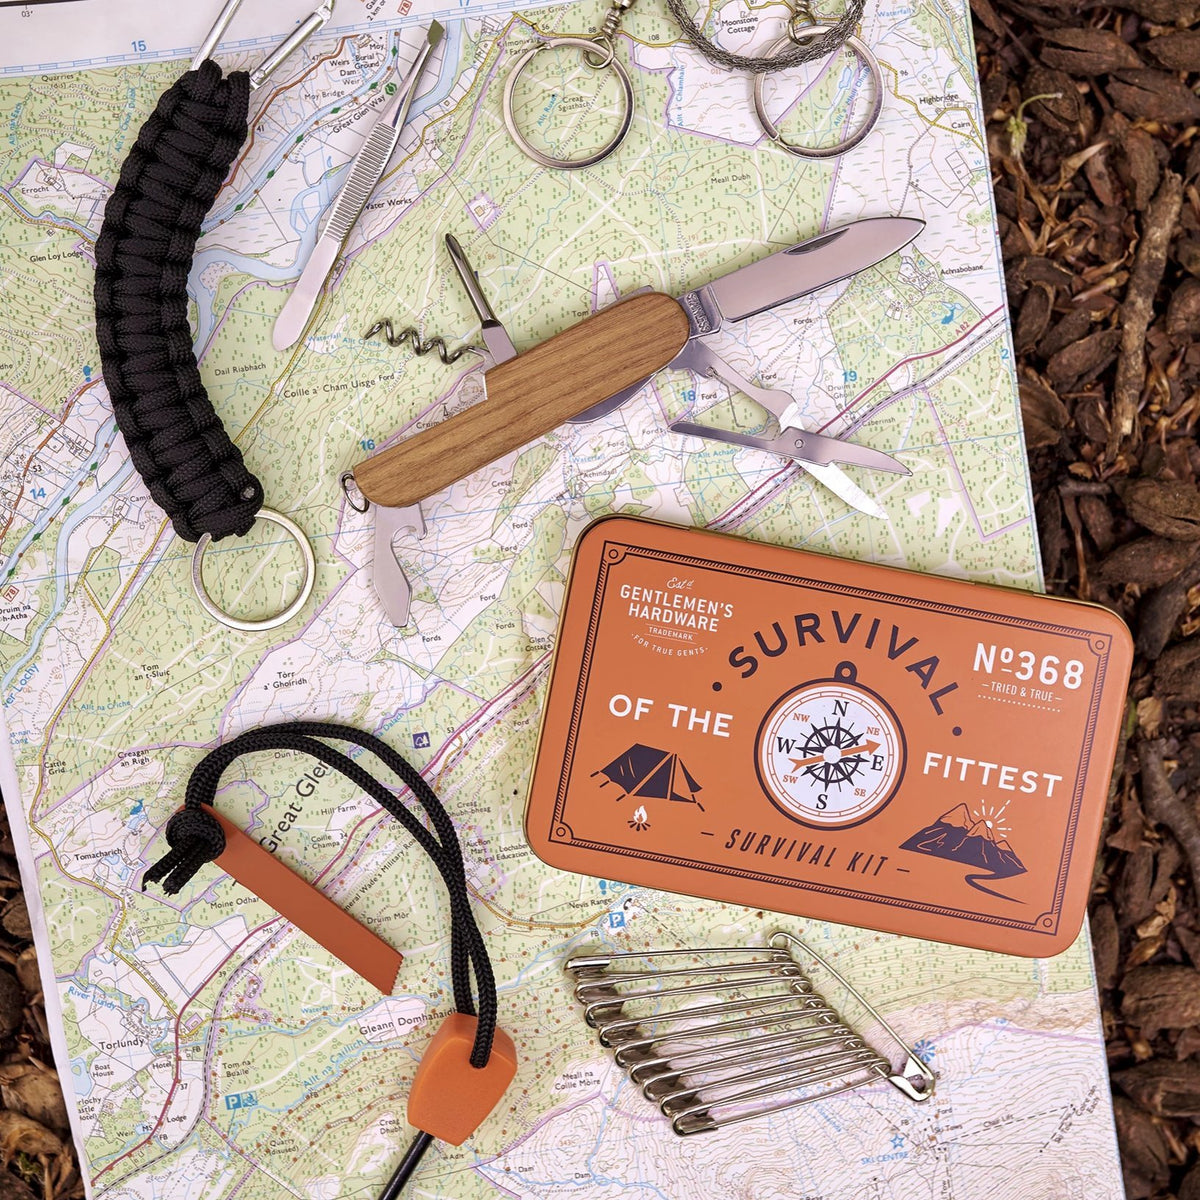 Gentleman's Hardware Survival Kit